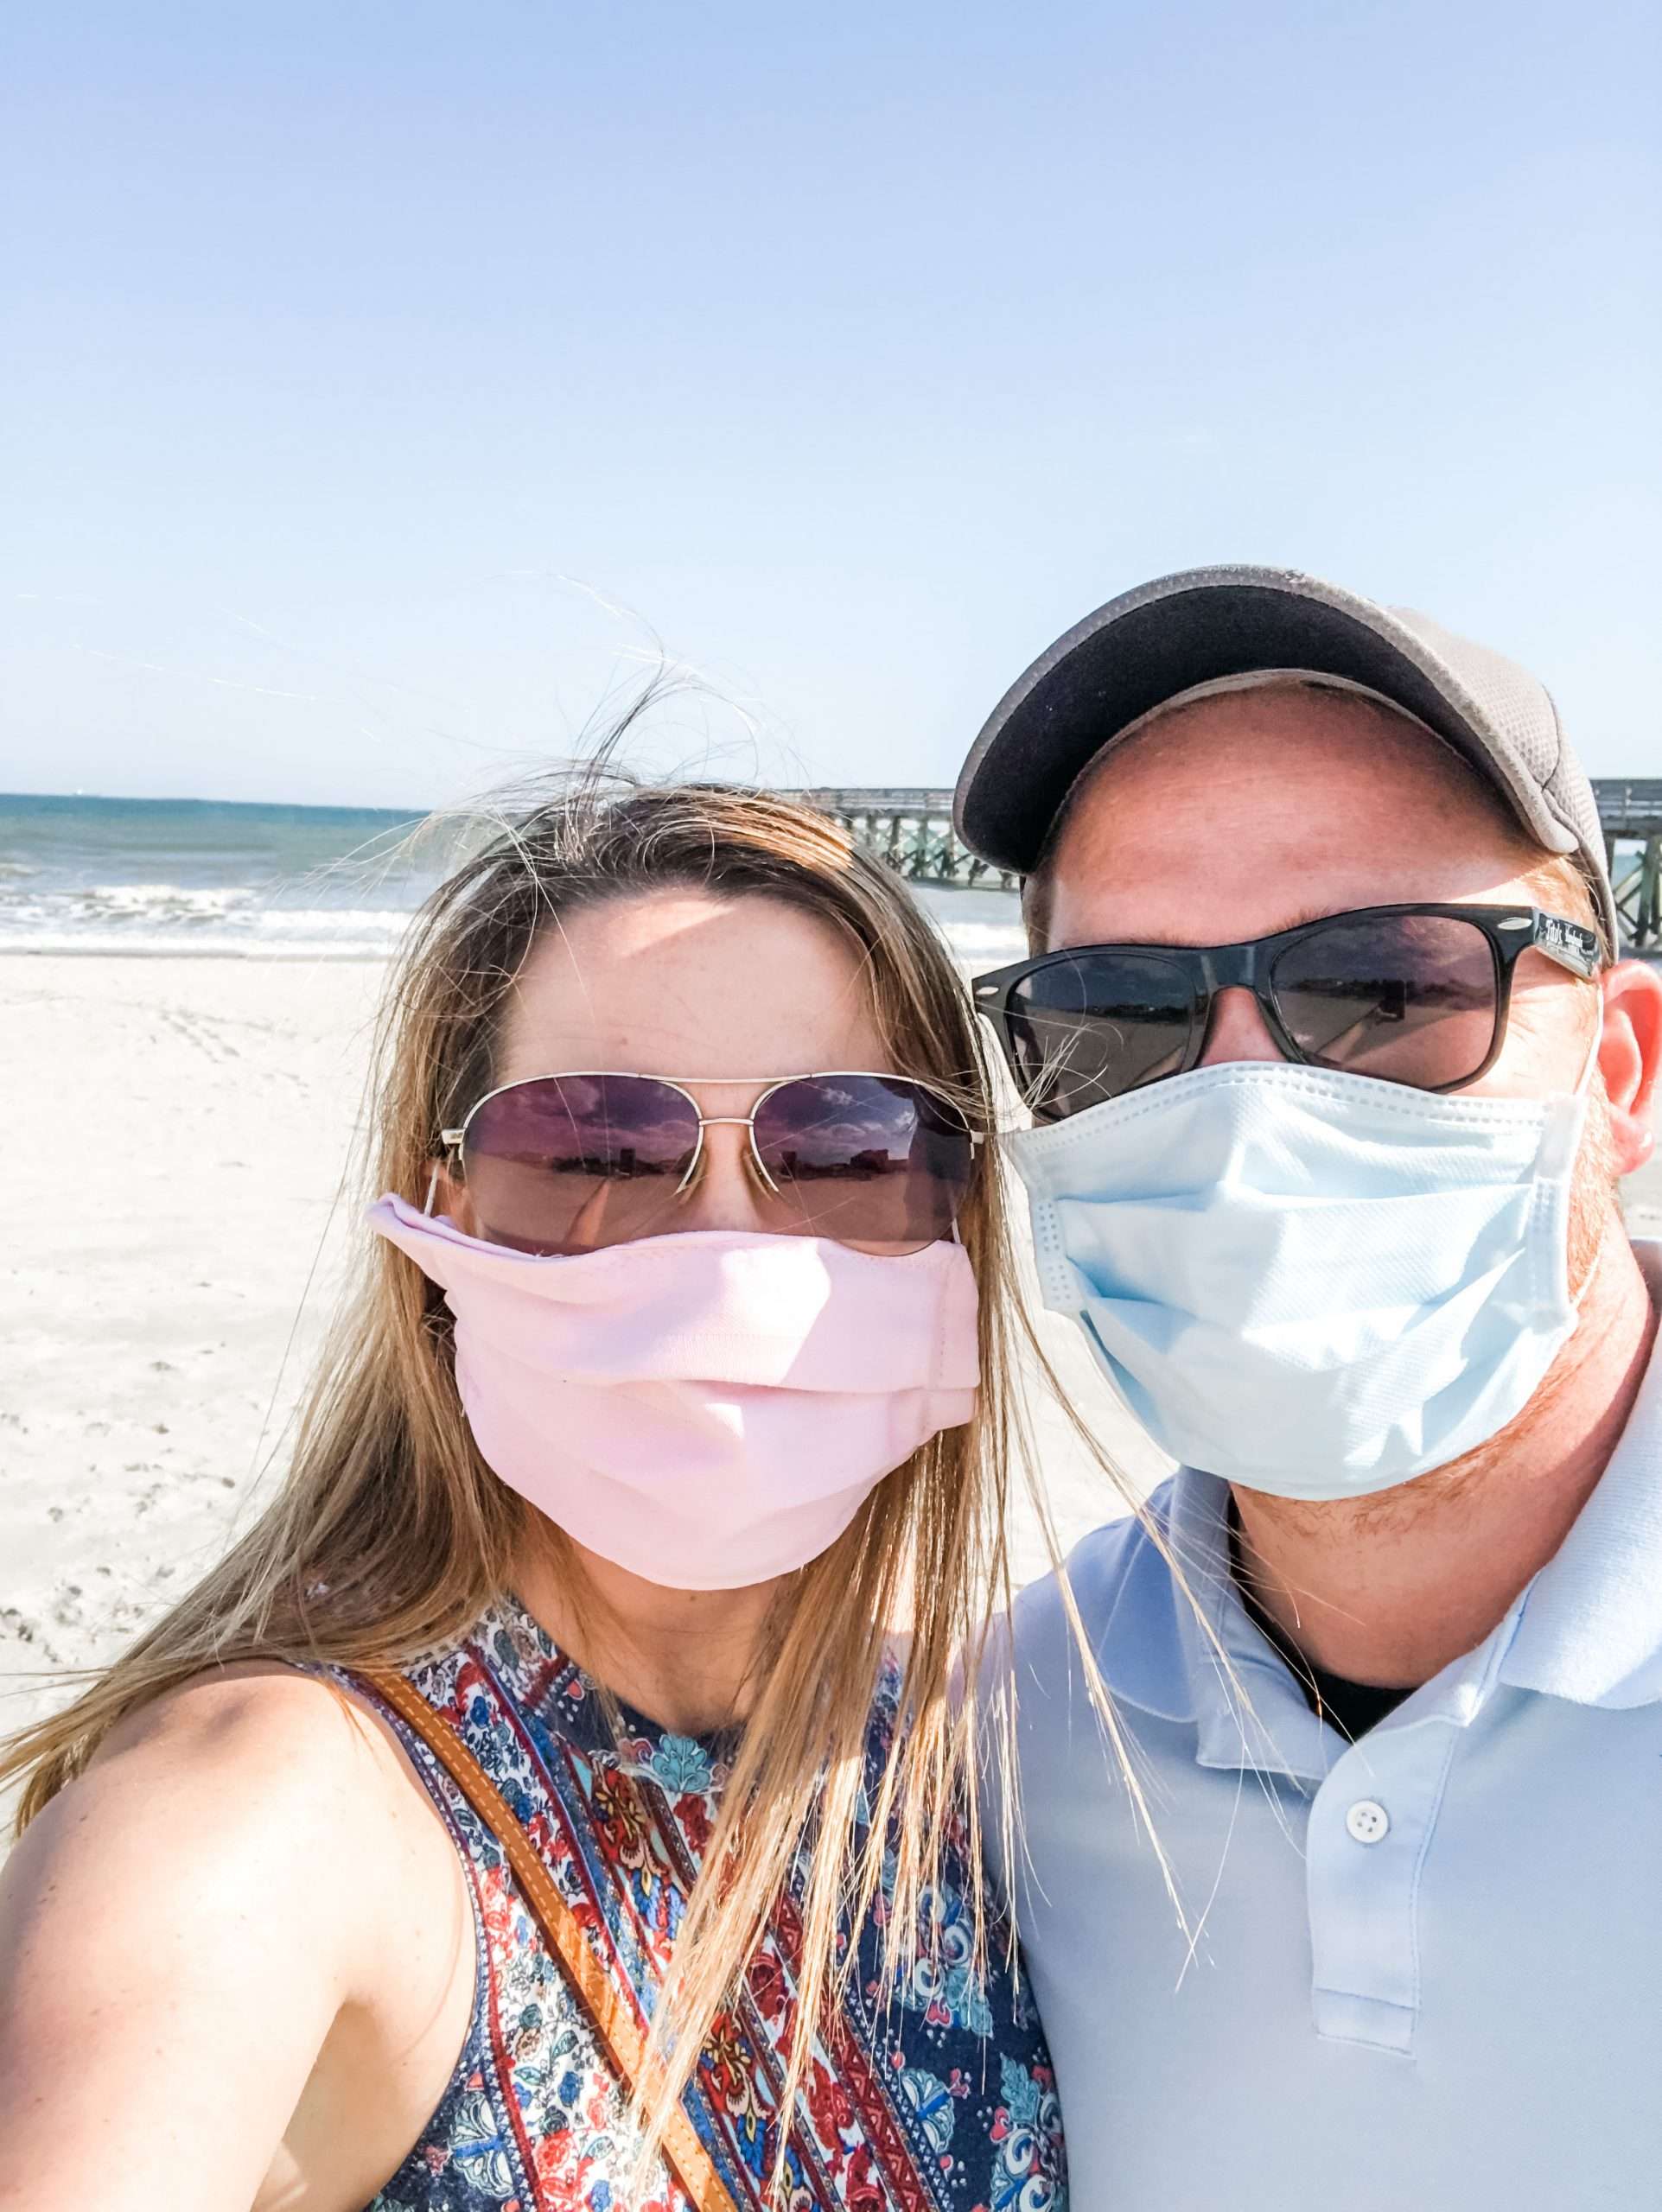 Man and woman in masks selfie in front of ocean.